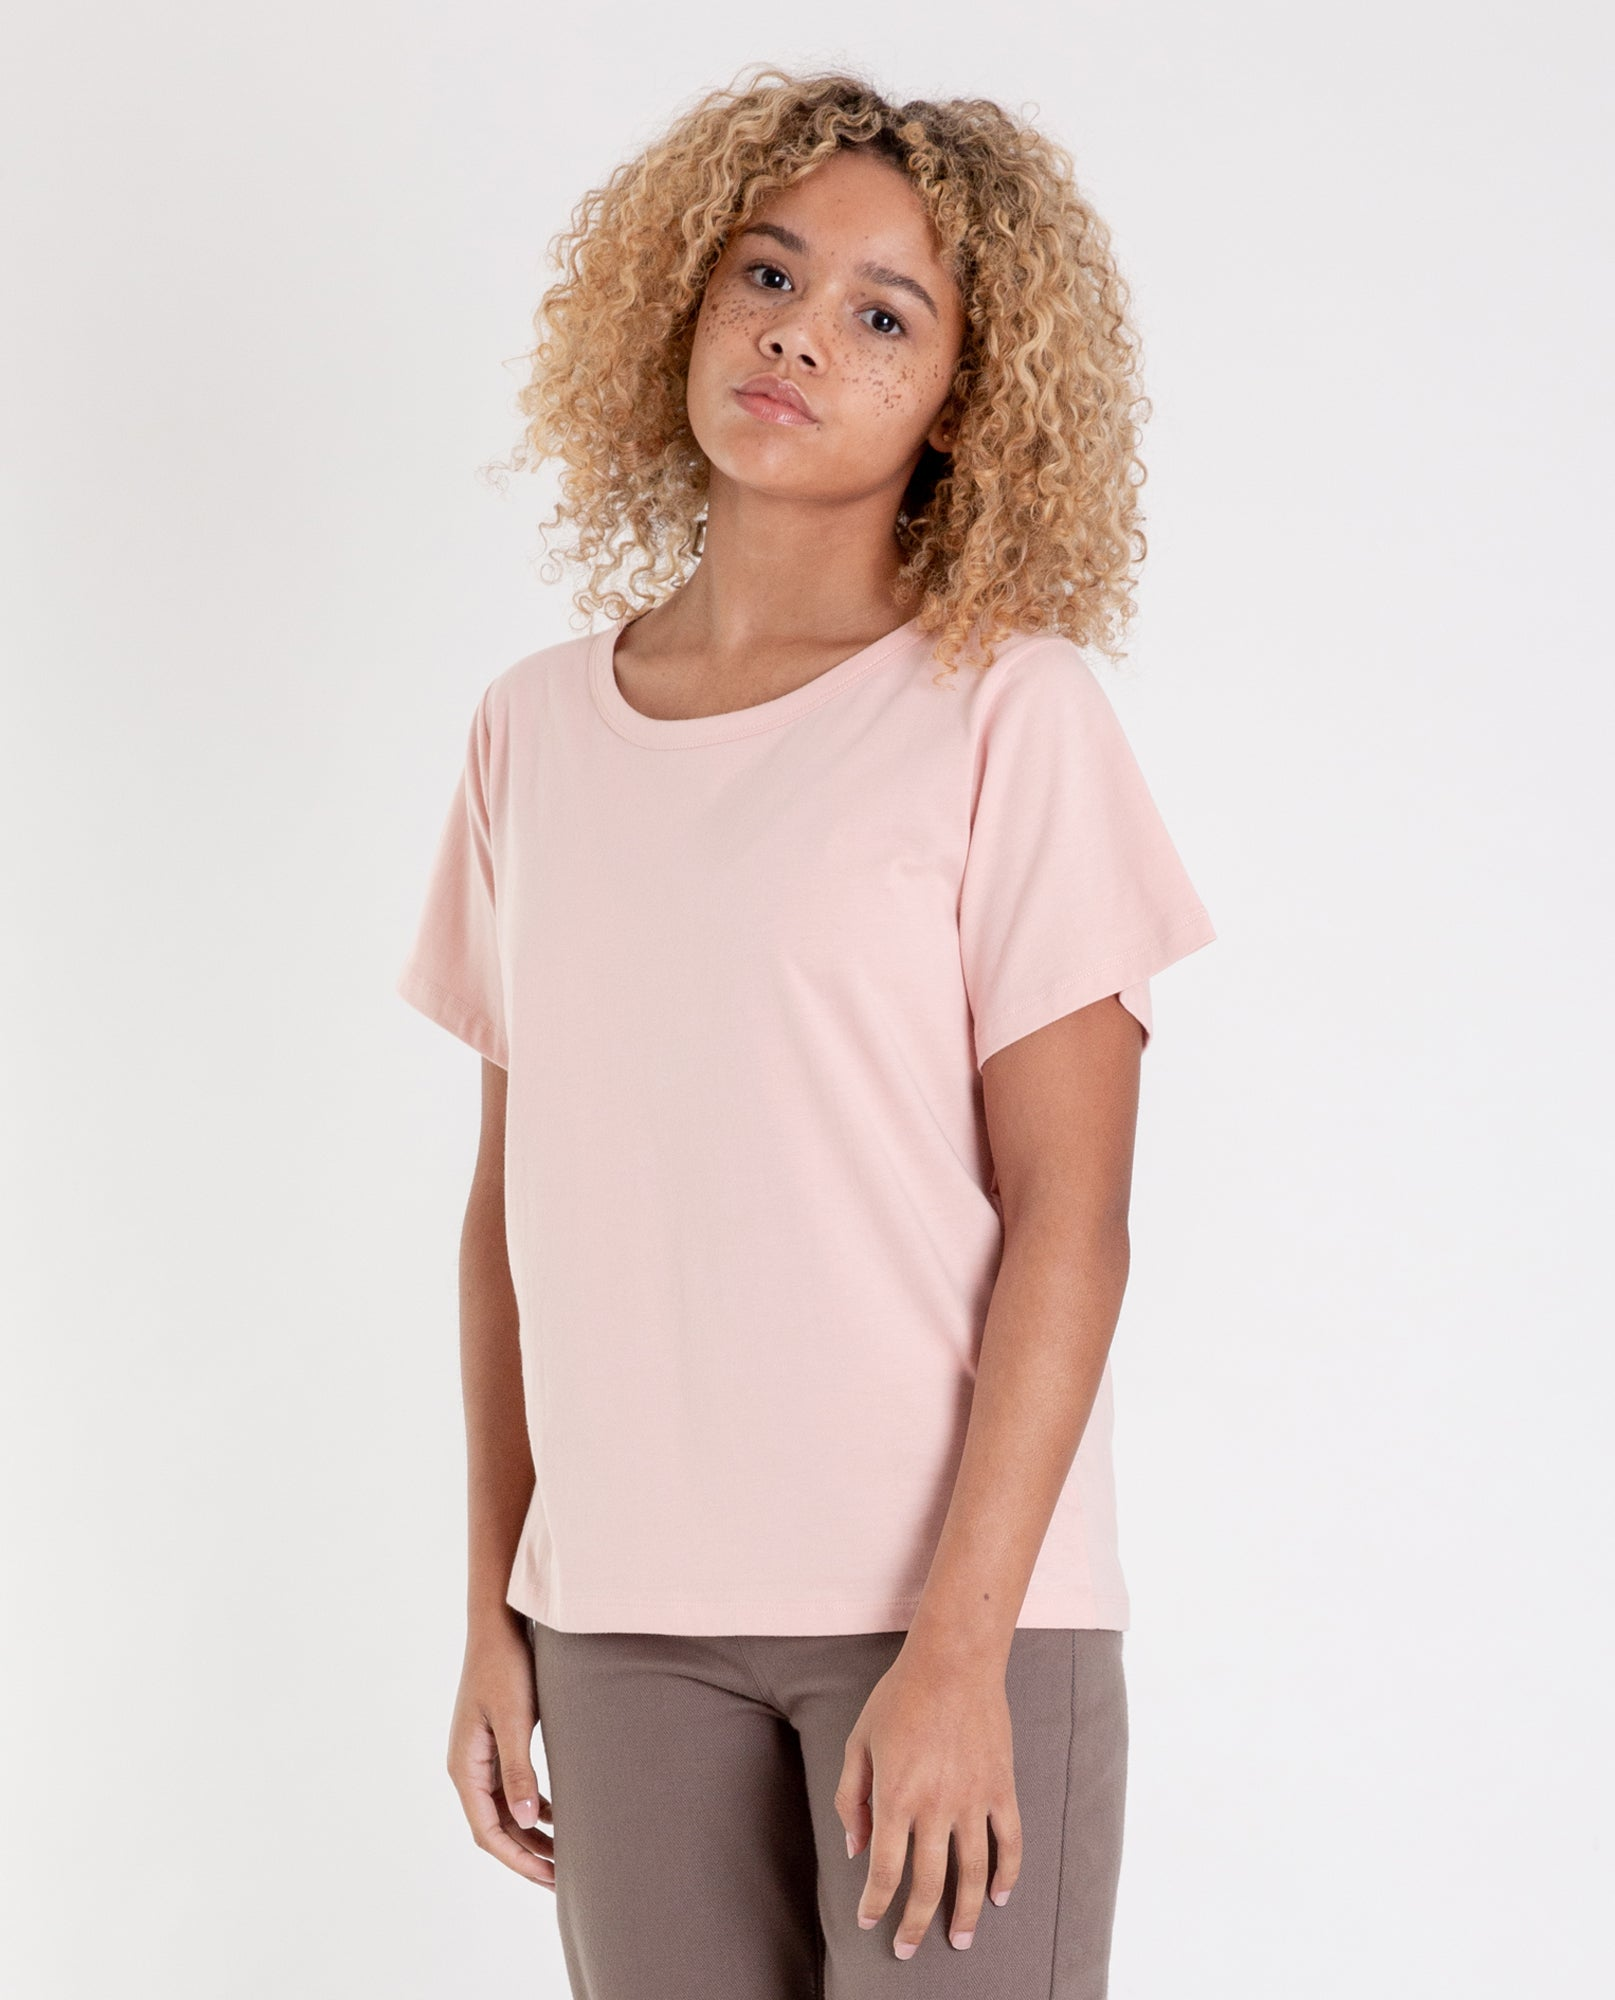 ZURI Organic Cotton Ruffle Tee In Coral